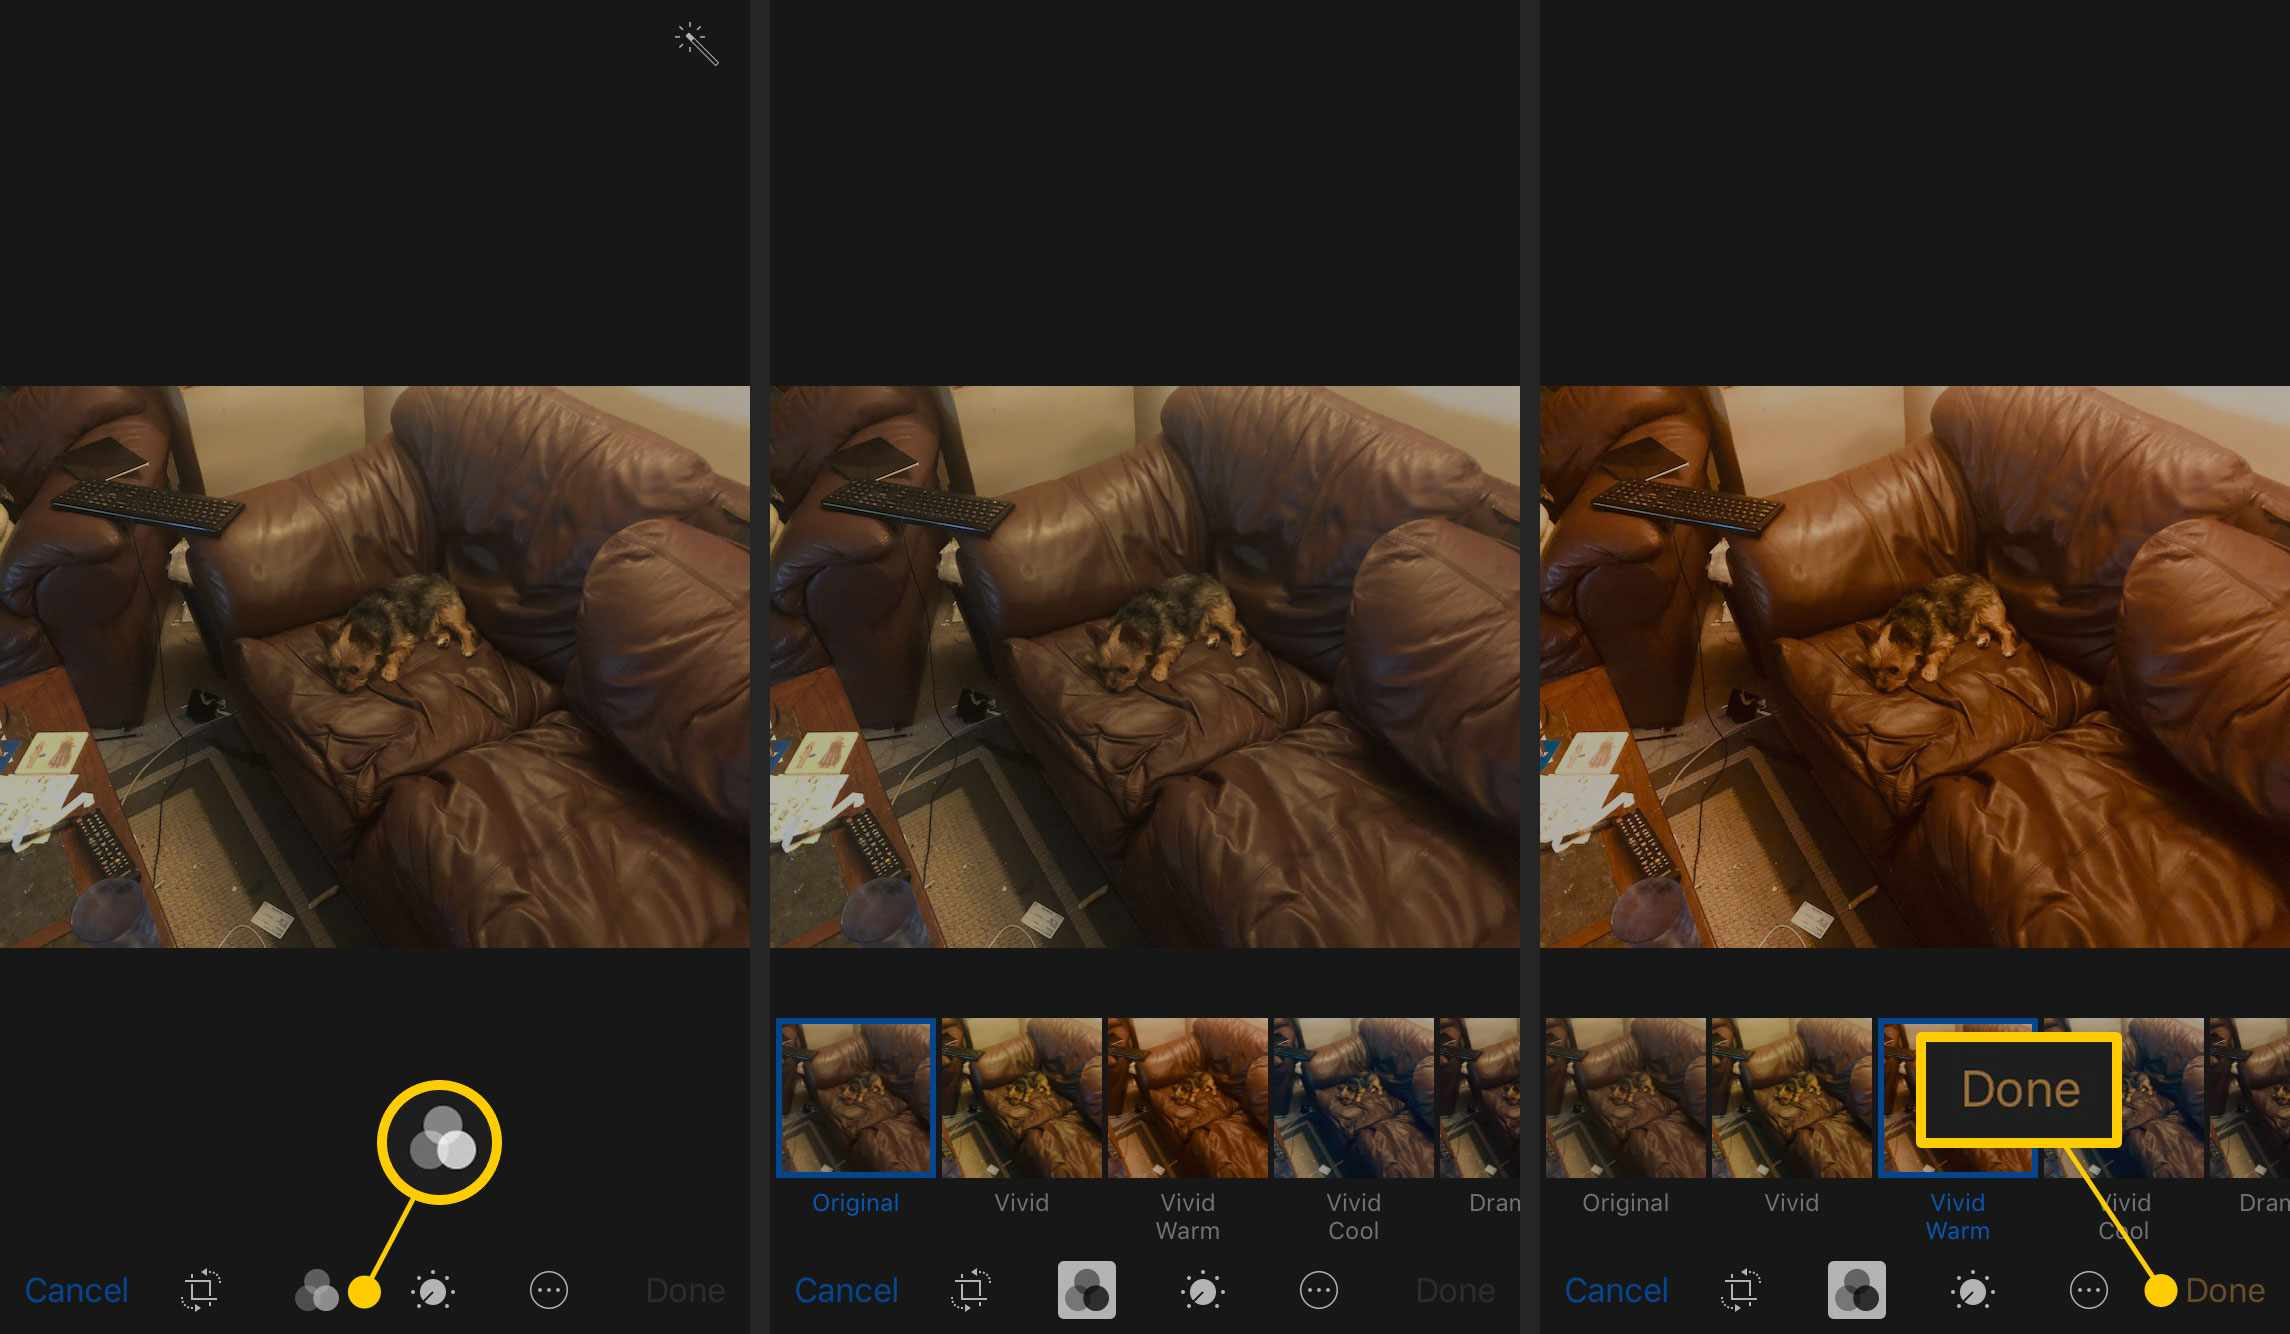 Applying a filter in Photos on iPhone